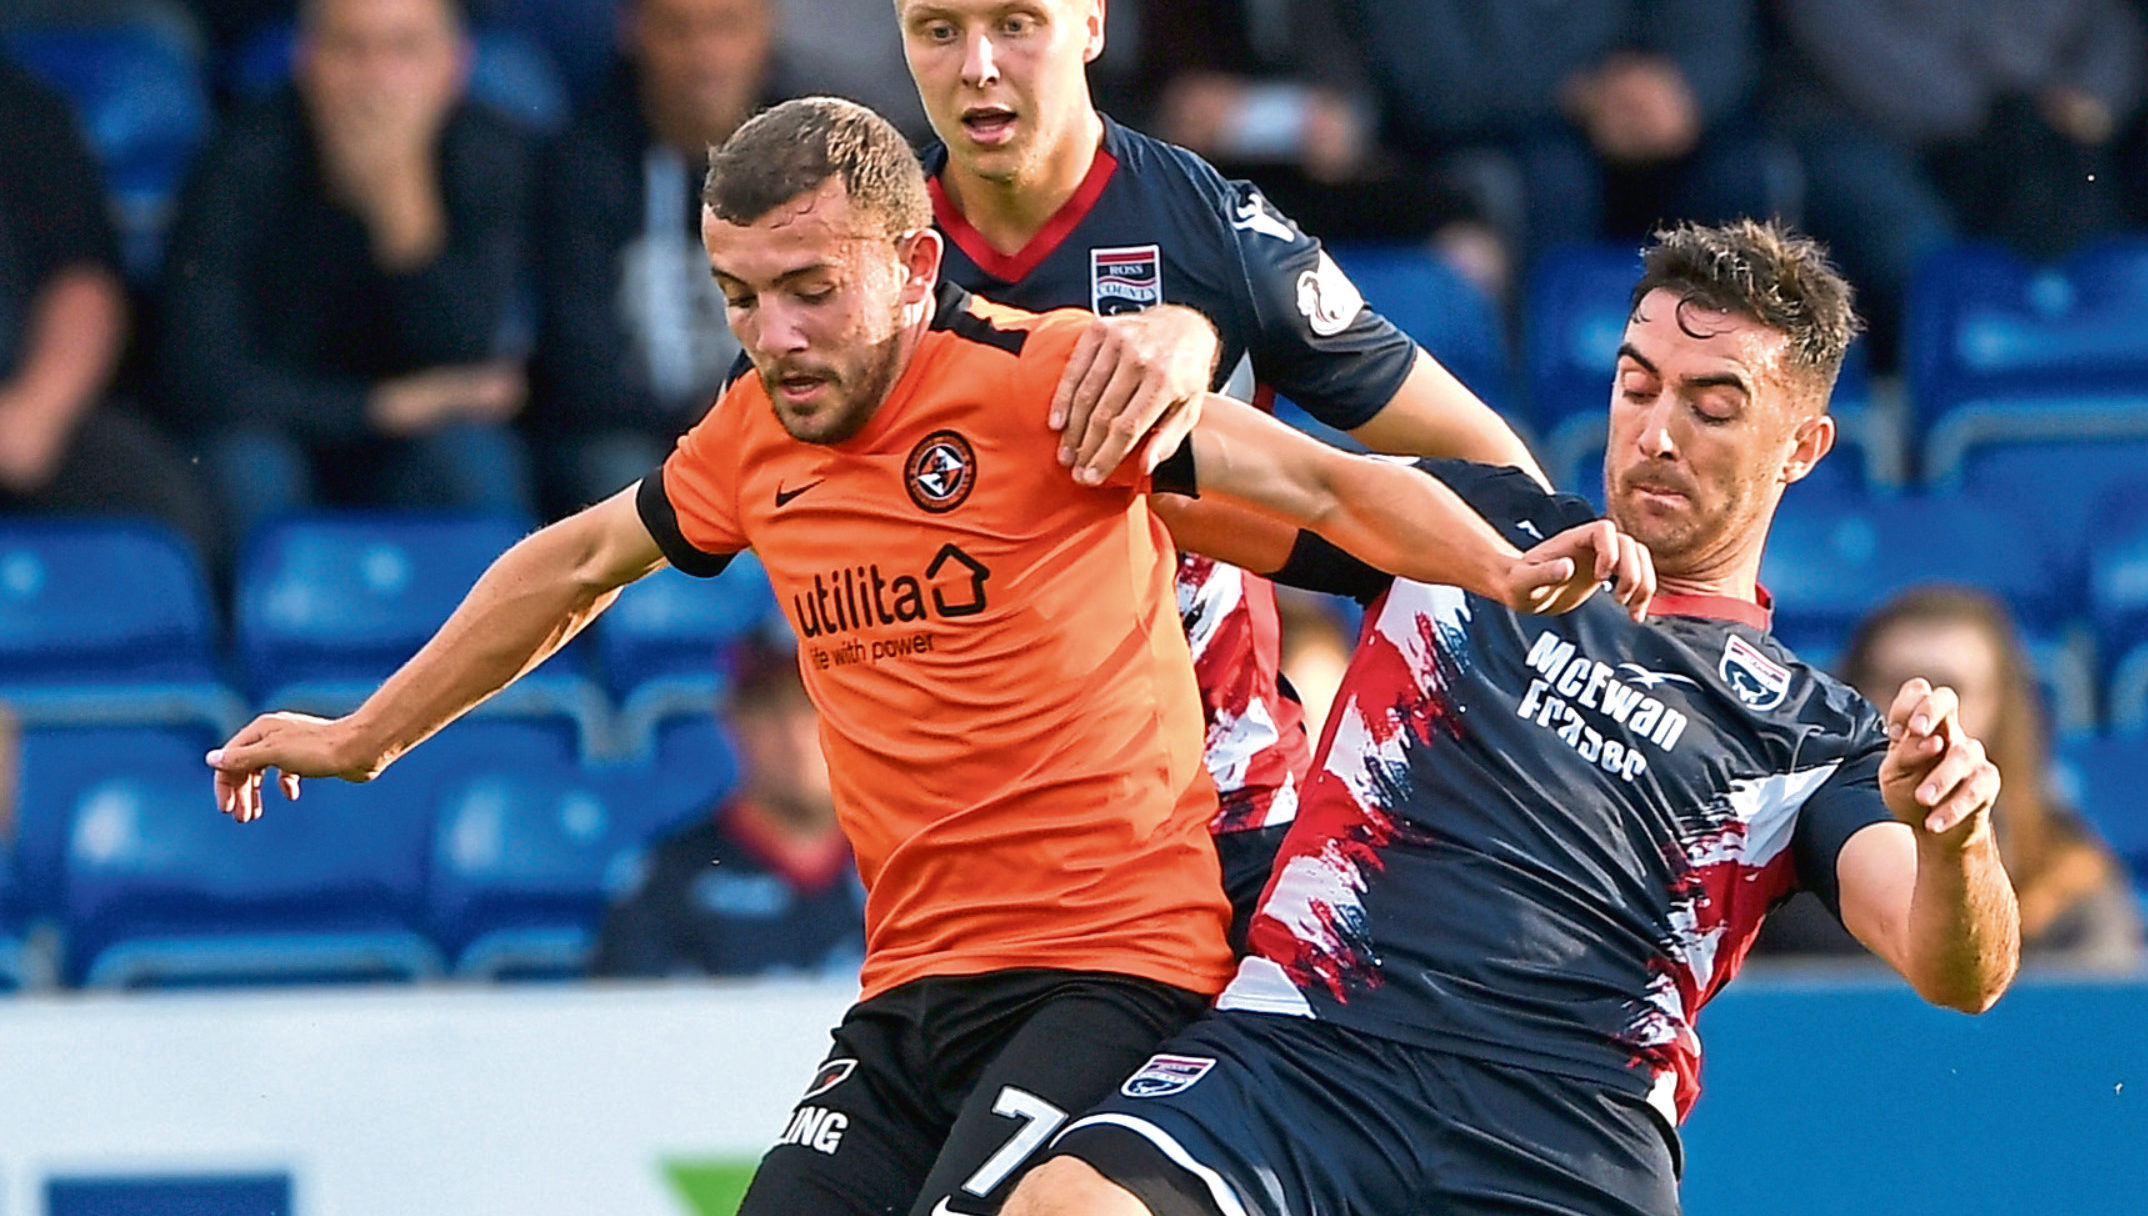 Dundee United's Paul McMullan challenges Ross County's Ross Draper